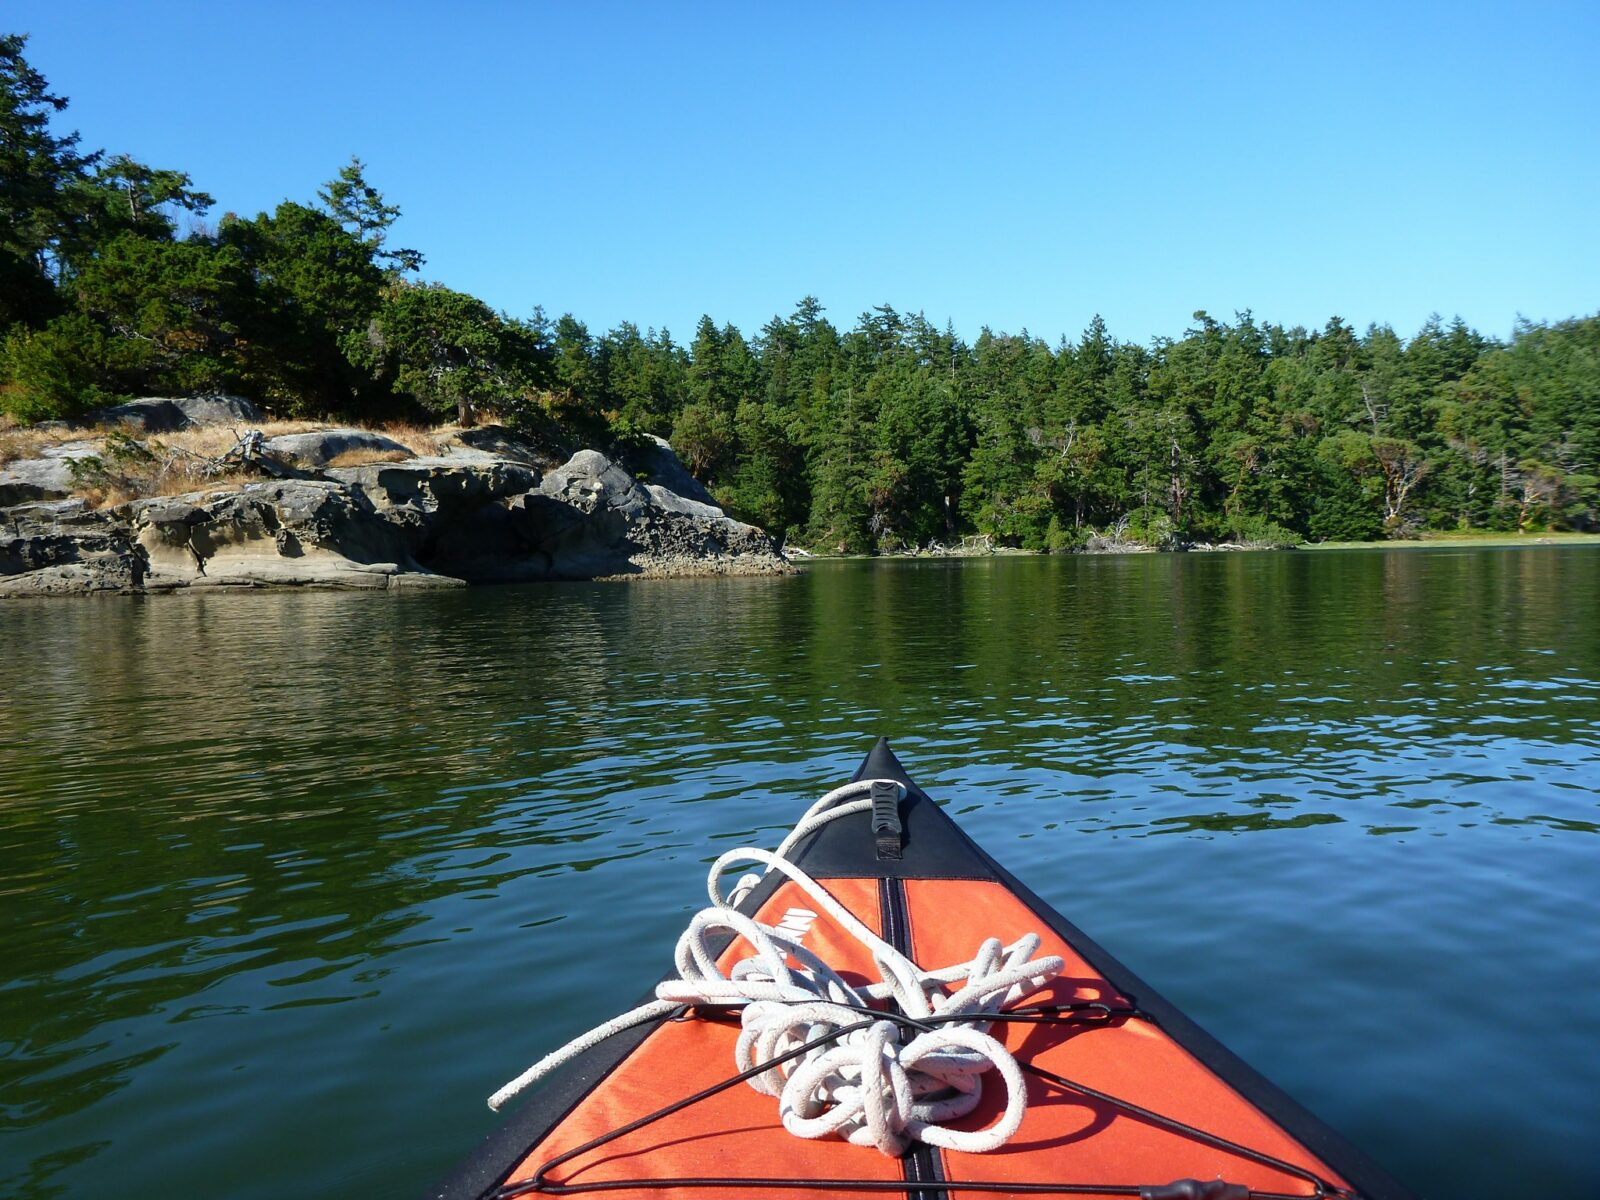 The front of a red kayak in Fossil Bay on Sucia Island. It's a sunny day and the forested island also has rocky outcroppings in the water